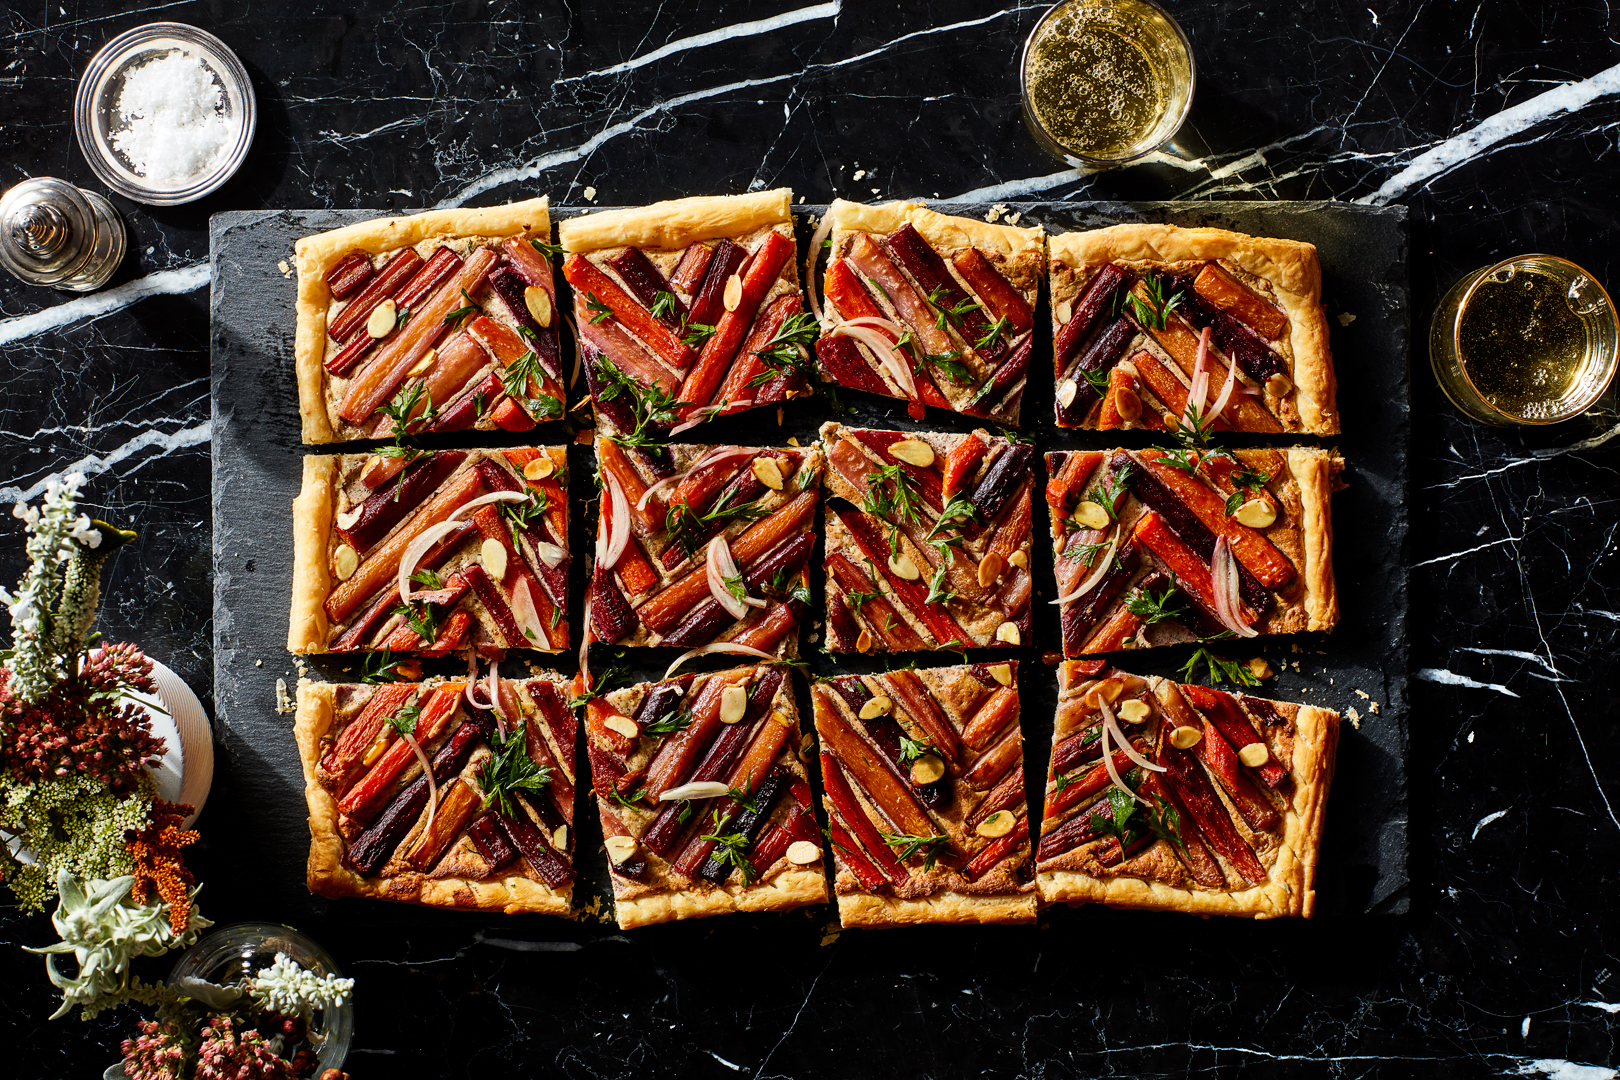 Carrot-Tart-with-Ricotta-and-Almond-Filling-29092016-copy-1080.jpg